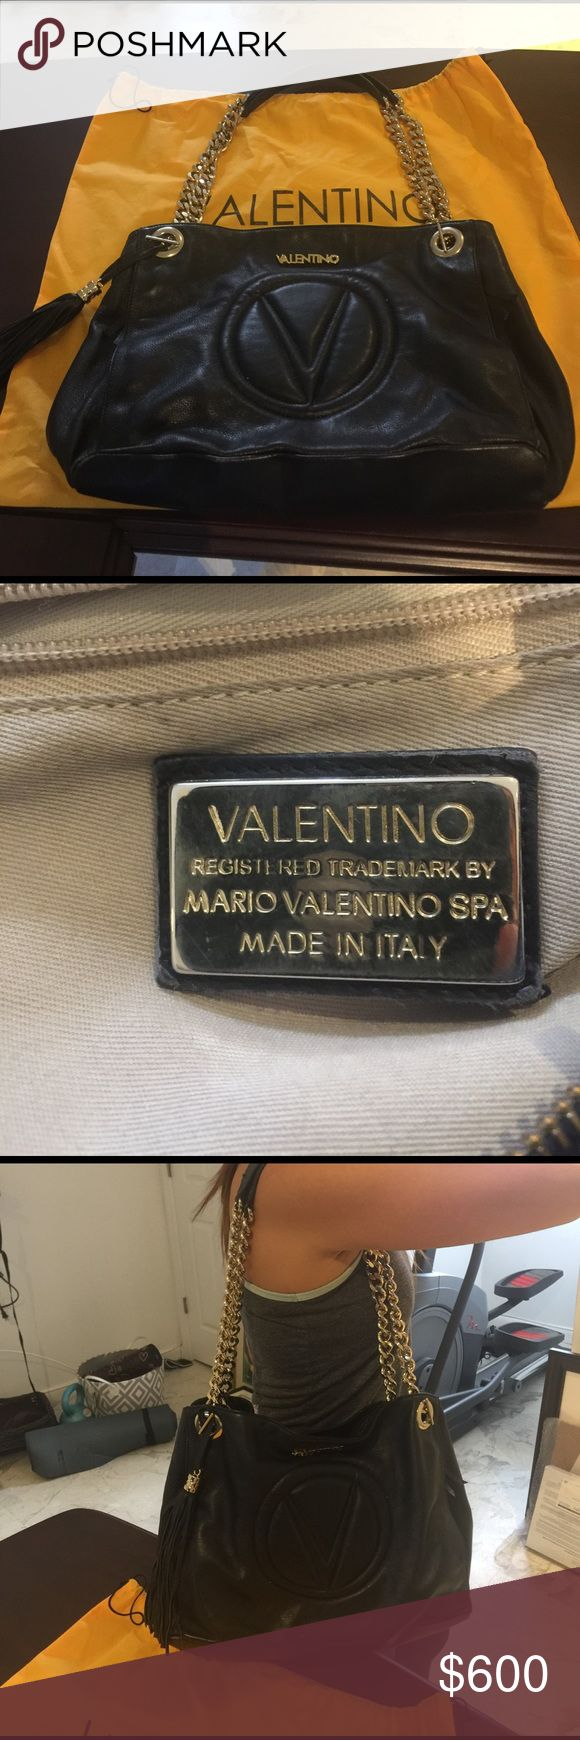 "AUTHENTIC MARIO VALENTINO VERA  BLACK SHOULDER BAG AUTHENTIC MARIO VALENTINO VERA  BLACK SHOULDER BAG TOP HANDLE 10"" TOP MAGNETIC SNAP BUTTON CLOSURE SILVER STONE HARD WARE TWO INTERIOR ZIP POCKETS INCLUDING DUST BAG SOME SCRATCHES IN THE BOTTOM Valentino Bags Shoulder Bags"